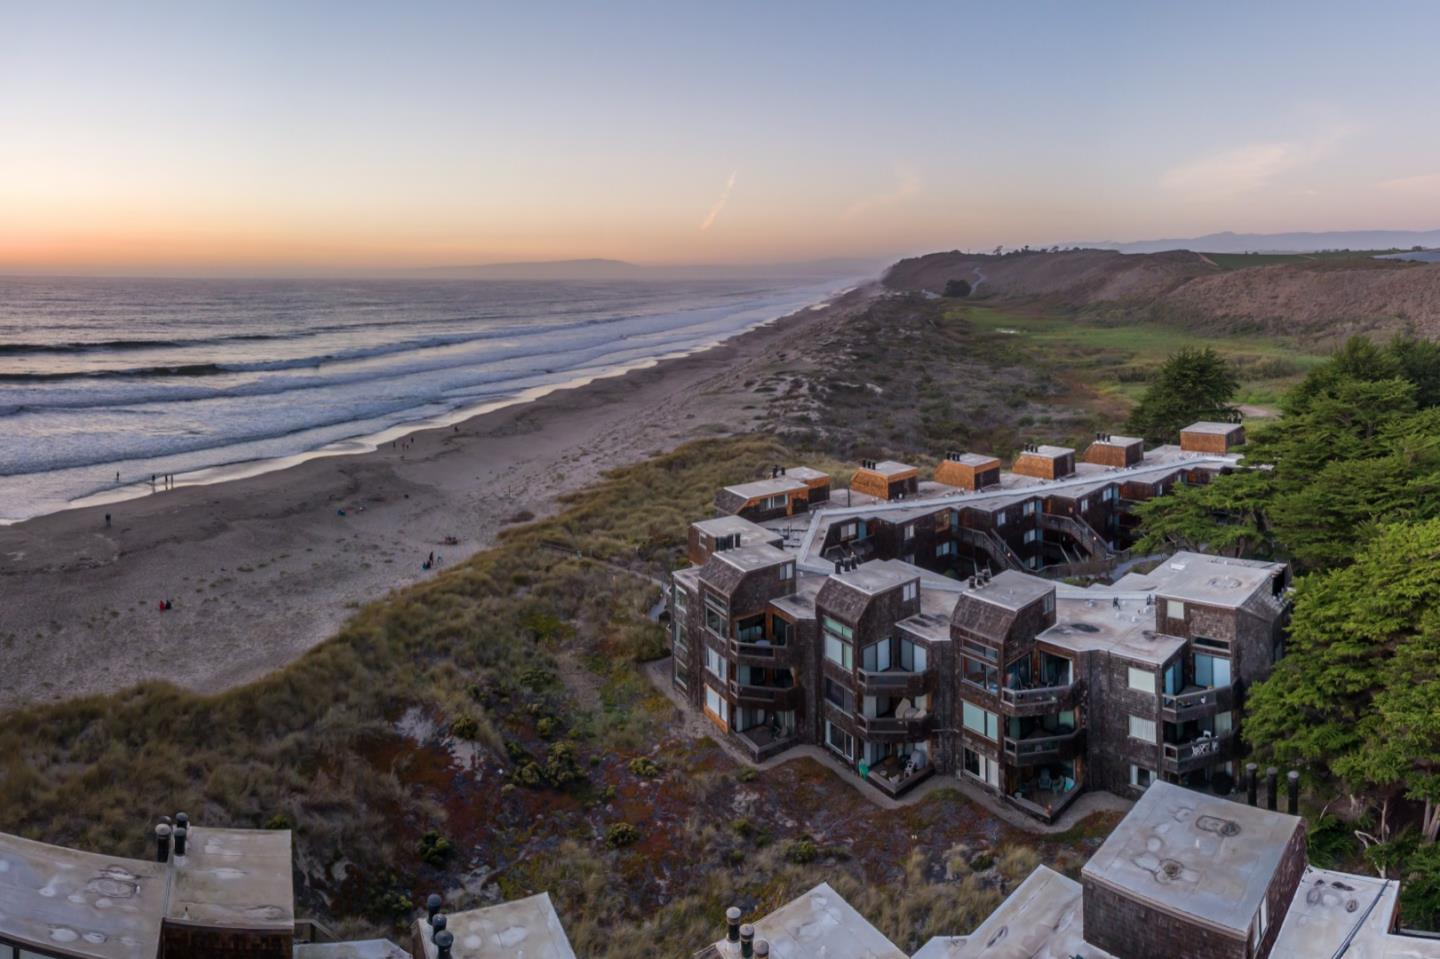 "OPEN BY APPT. JAN 16. ON THE SAND! White Water Views, Beach Level Ocean Front. No Stairs to Climb. Best Location in Complex!! Bright 1BR/1BA Condo in Pajaro Dunes Completely REMODELED $$$ in upgrades!! You will Fall in Love the Minute you Walk-In. All INTERIOR FURNISHING INCLUDED, U-Line Wine Cooler, Custom Granite Leather Tops, Shaker Cabinets, Recessed Lighting ,New Interior Doors & Paint, Stone Fireplace, High End Tile Plank Floors, SOFA turns into Queen Bed, SS Appliances / Counter-Depth Refrigerator & Washer & Dryer. Steps to the Water & Miles of Unspoiled Beach. Building ""I"" Is the very last building with no one next to you on the Northside. Tennis Courts/Clubhouse Nearby. 24 Hour Security Guard House. Could be a Vacation Rental or Beach Getaway. Sunny/Southern Exposure. Best Priced Beach Home on the Bay. Within 1 Hour from the Bay Area. This Beach property is between Santa Cruz & Monterey / Carmel. Welcome Home. Owner Pets Allowed. Can be sold in 1/4 shares, See MLS: ML81823266"